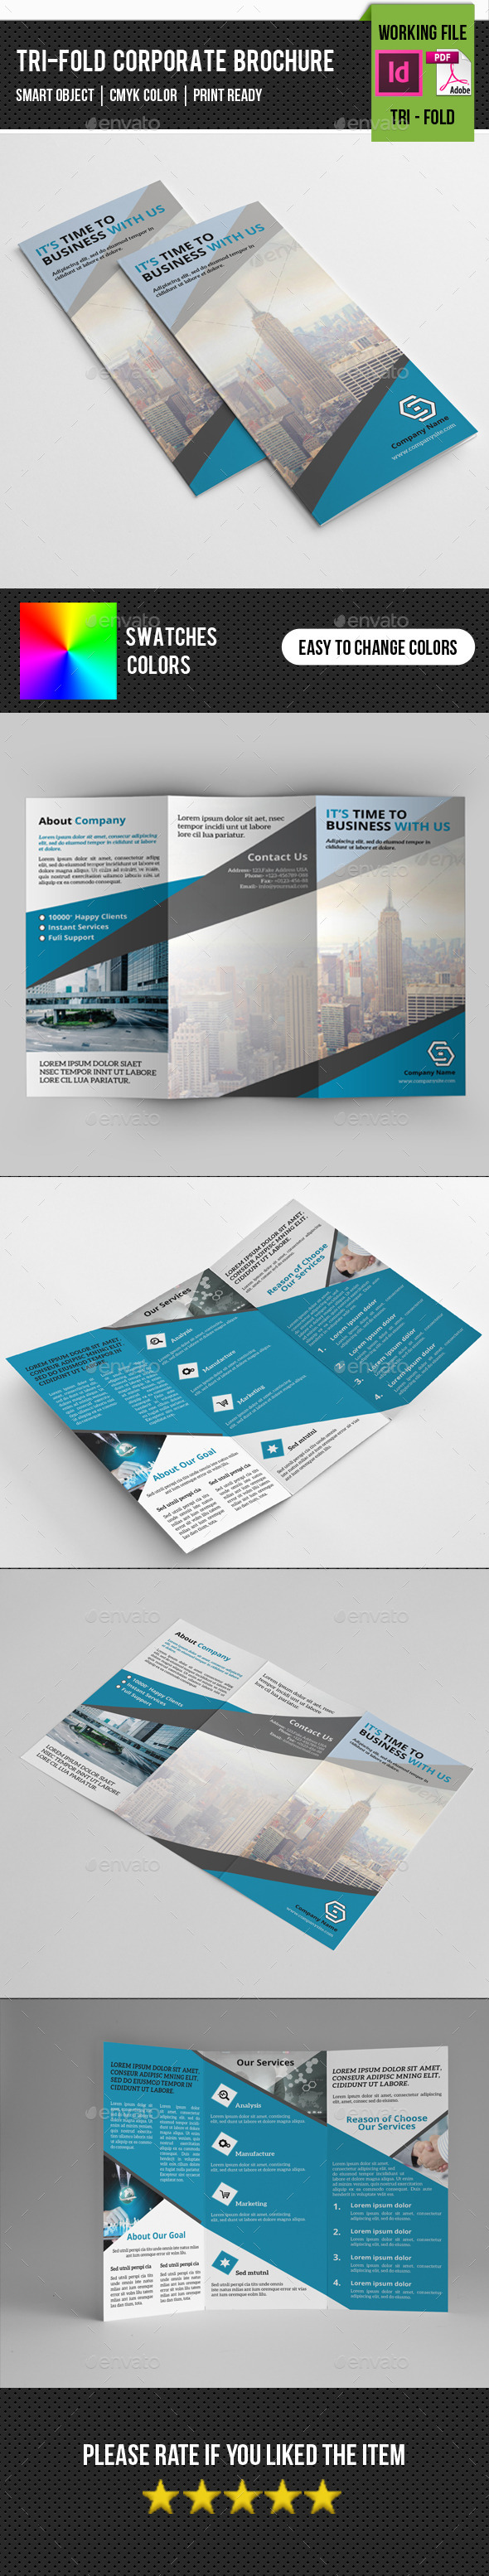 GraphicRiver Corporate Trifold Brochure-V231 11096266